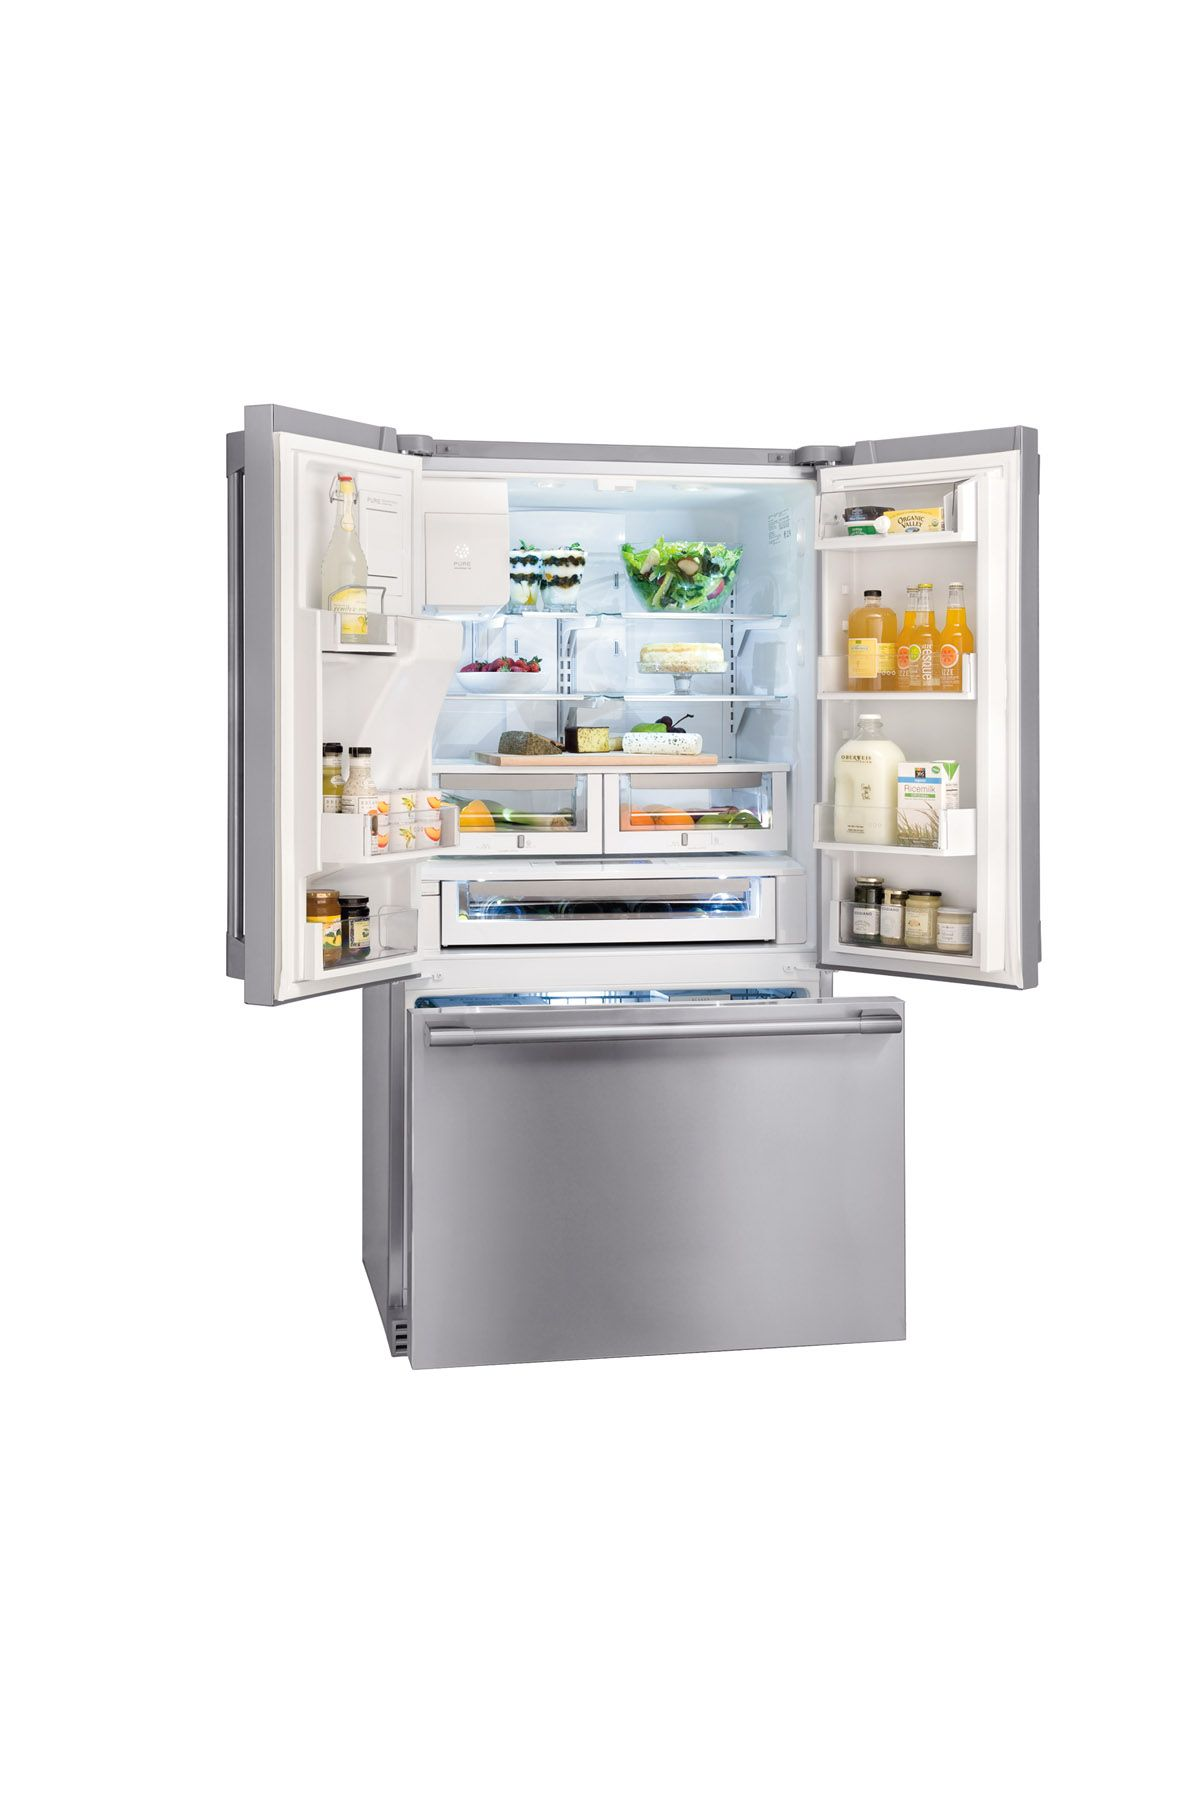 Electrolux ICON E23BC78IPS 22.6 cu. ft. Counter-Depth French-Door Bottom Freezer Refrigerator - Stainless Steel